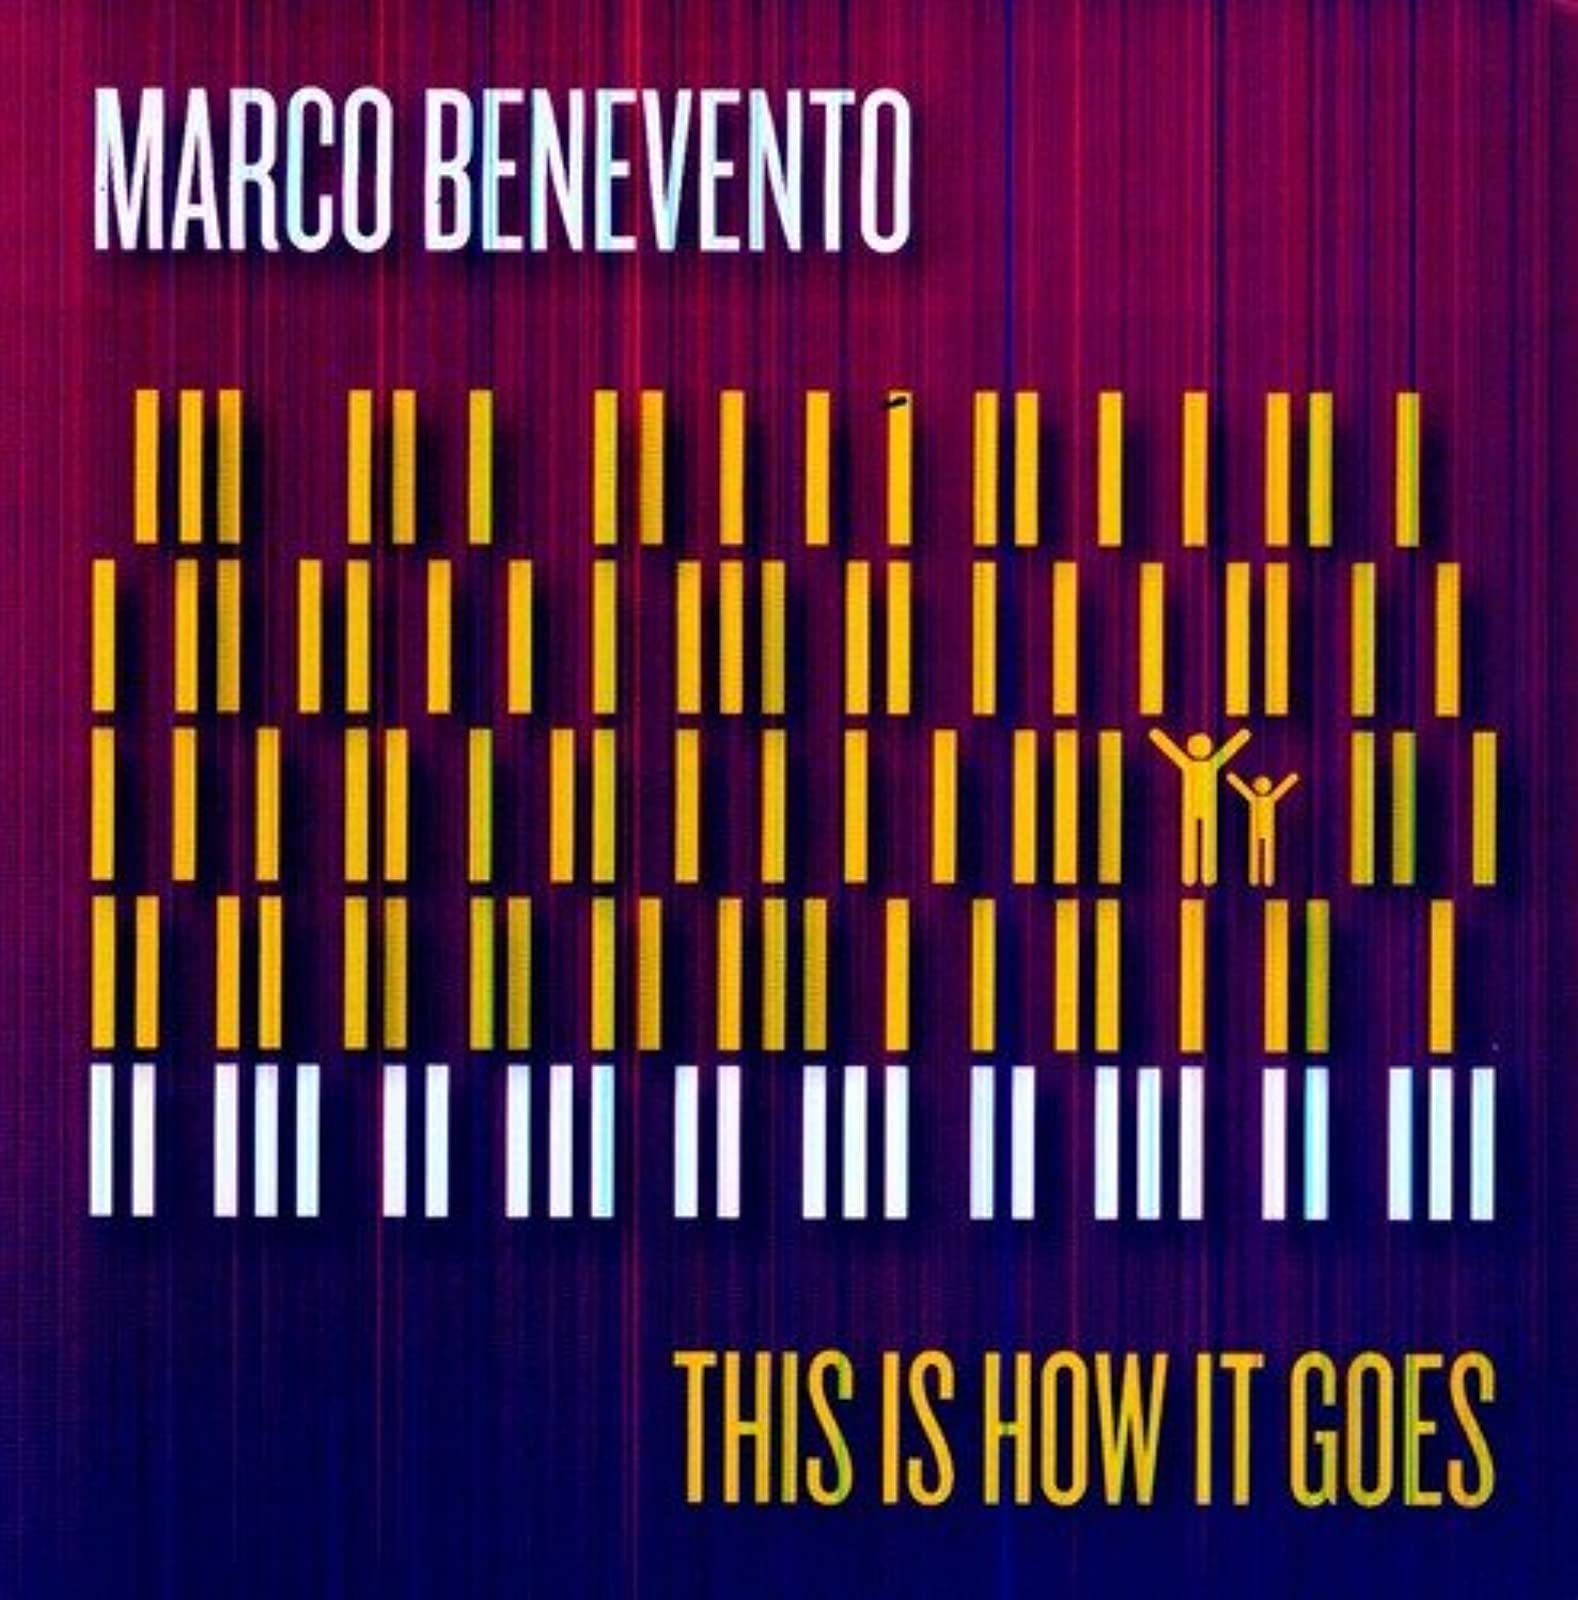 This Is How It Goes By Marco Benevento On Vinyl Record LP